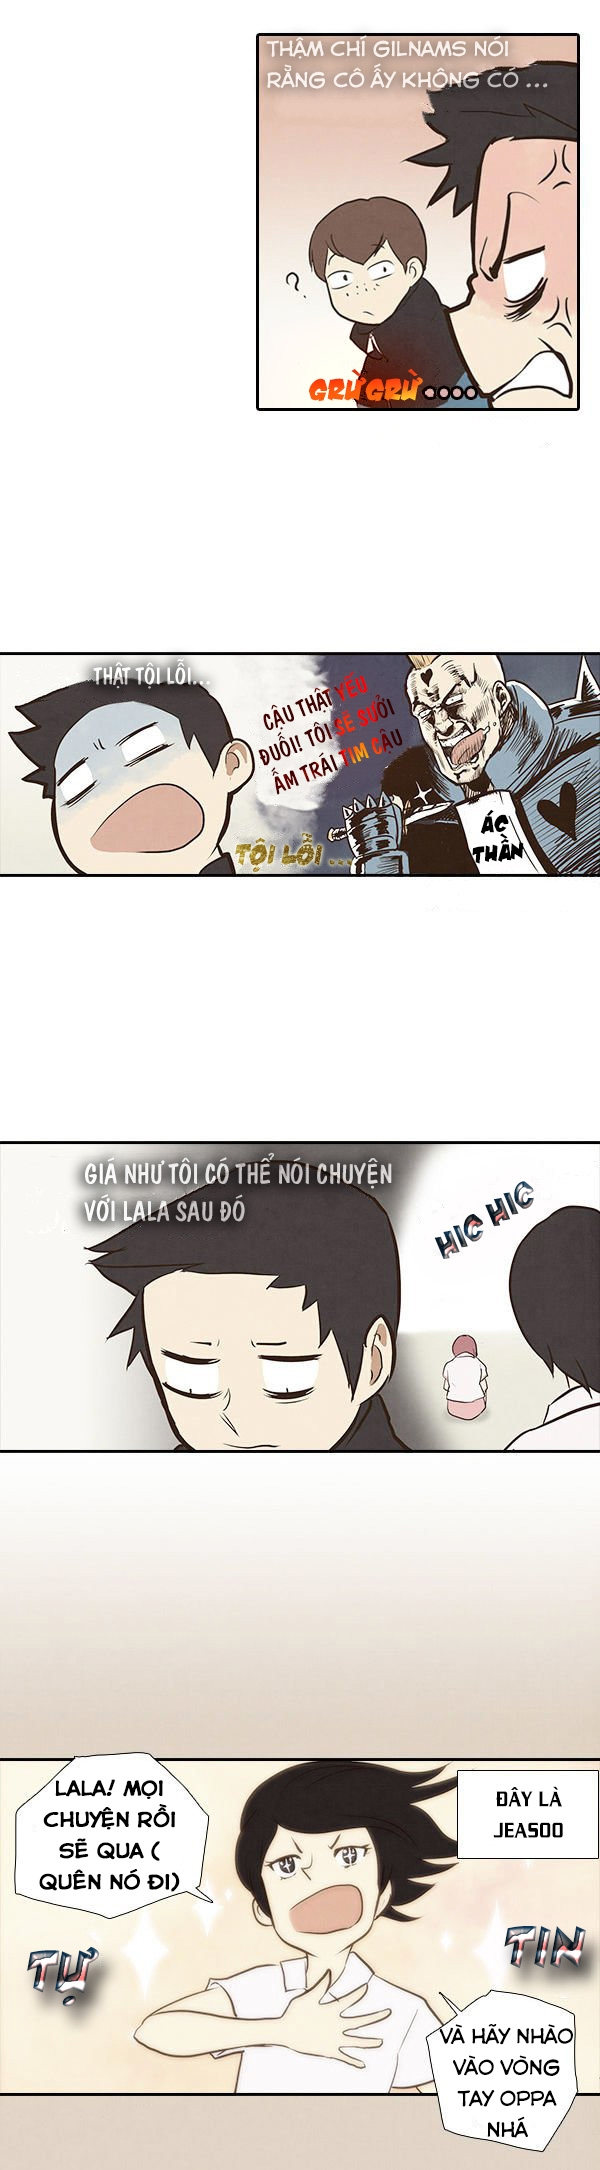 How To Open A Triangular Riceball Chap 8 Trang 20